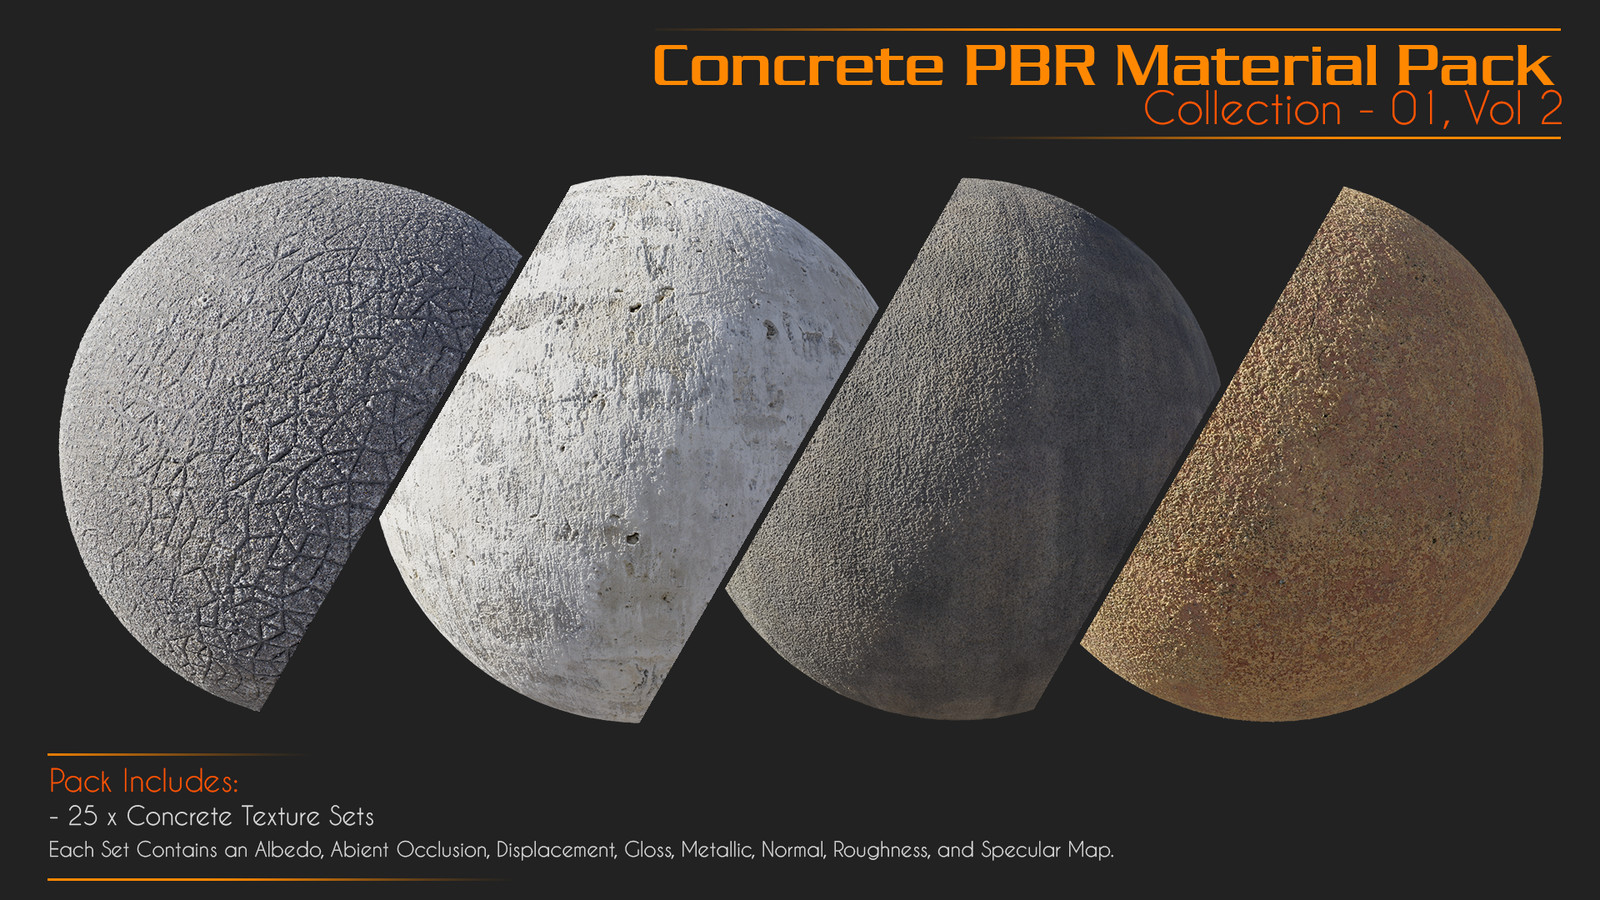 - Concrete Collection - 01 Vol 01 (Containing 25 PBR Material) https://gumroad.com/l/oUuG